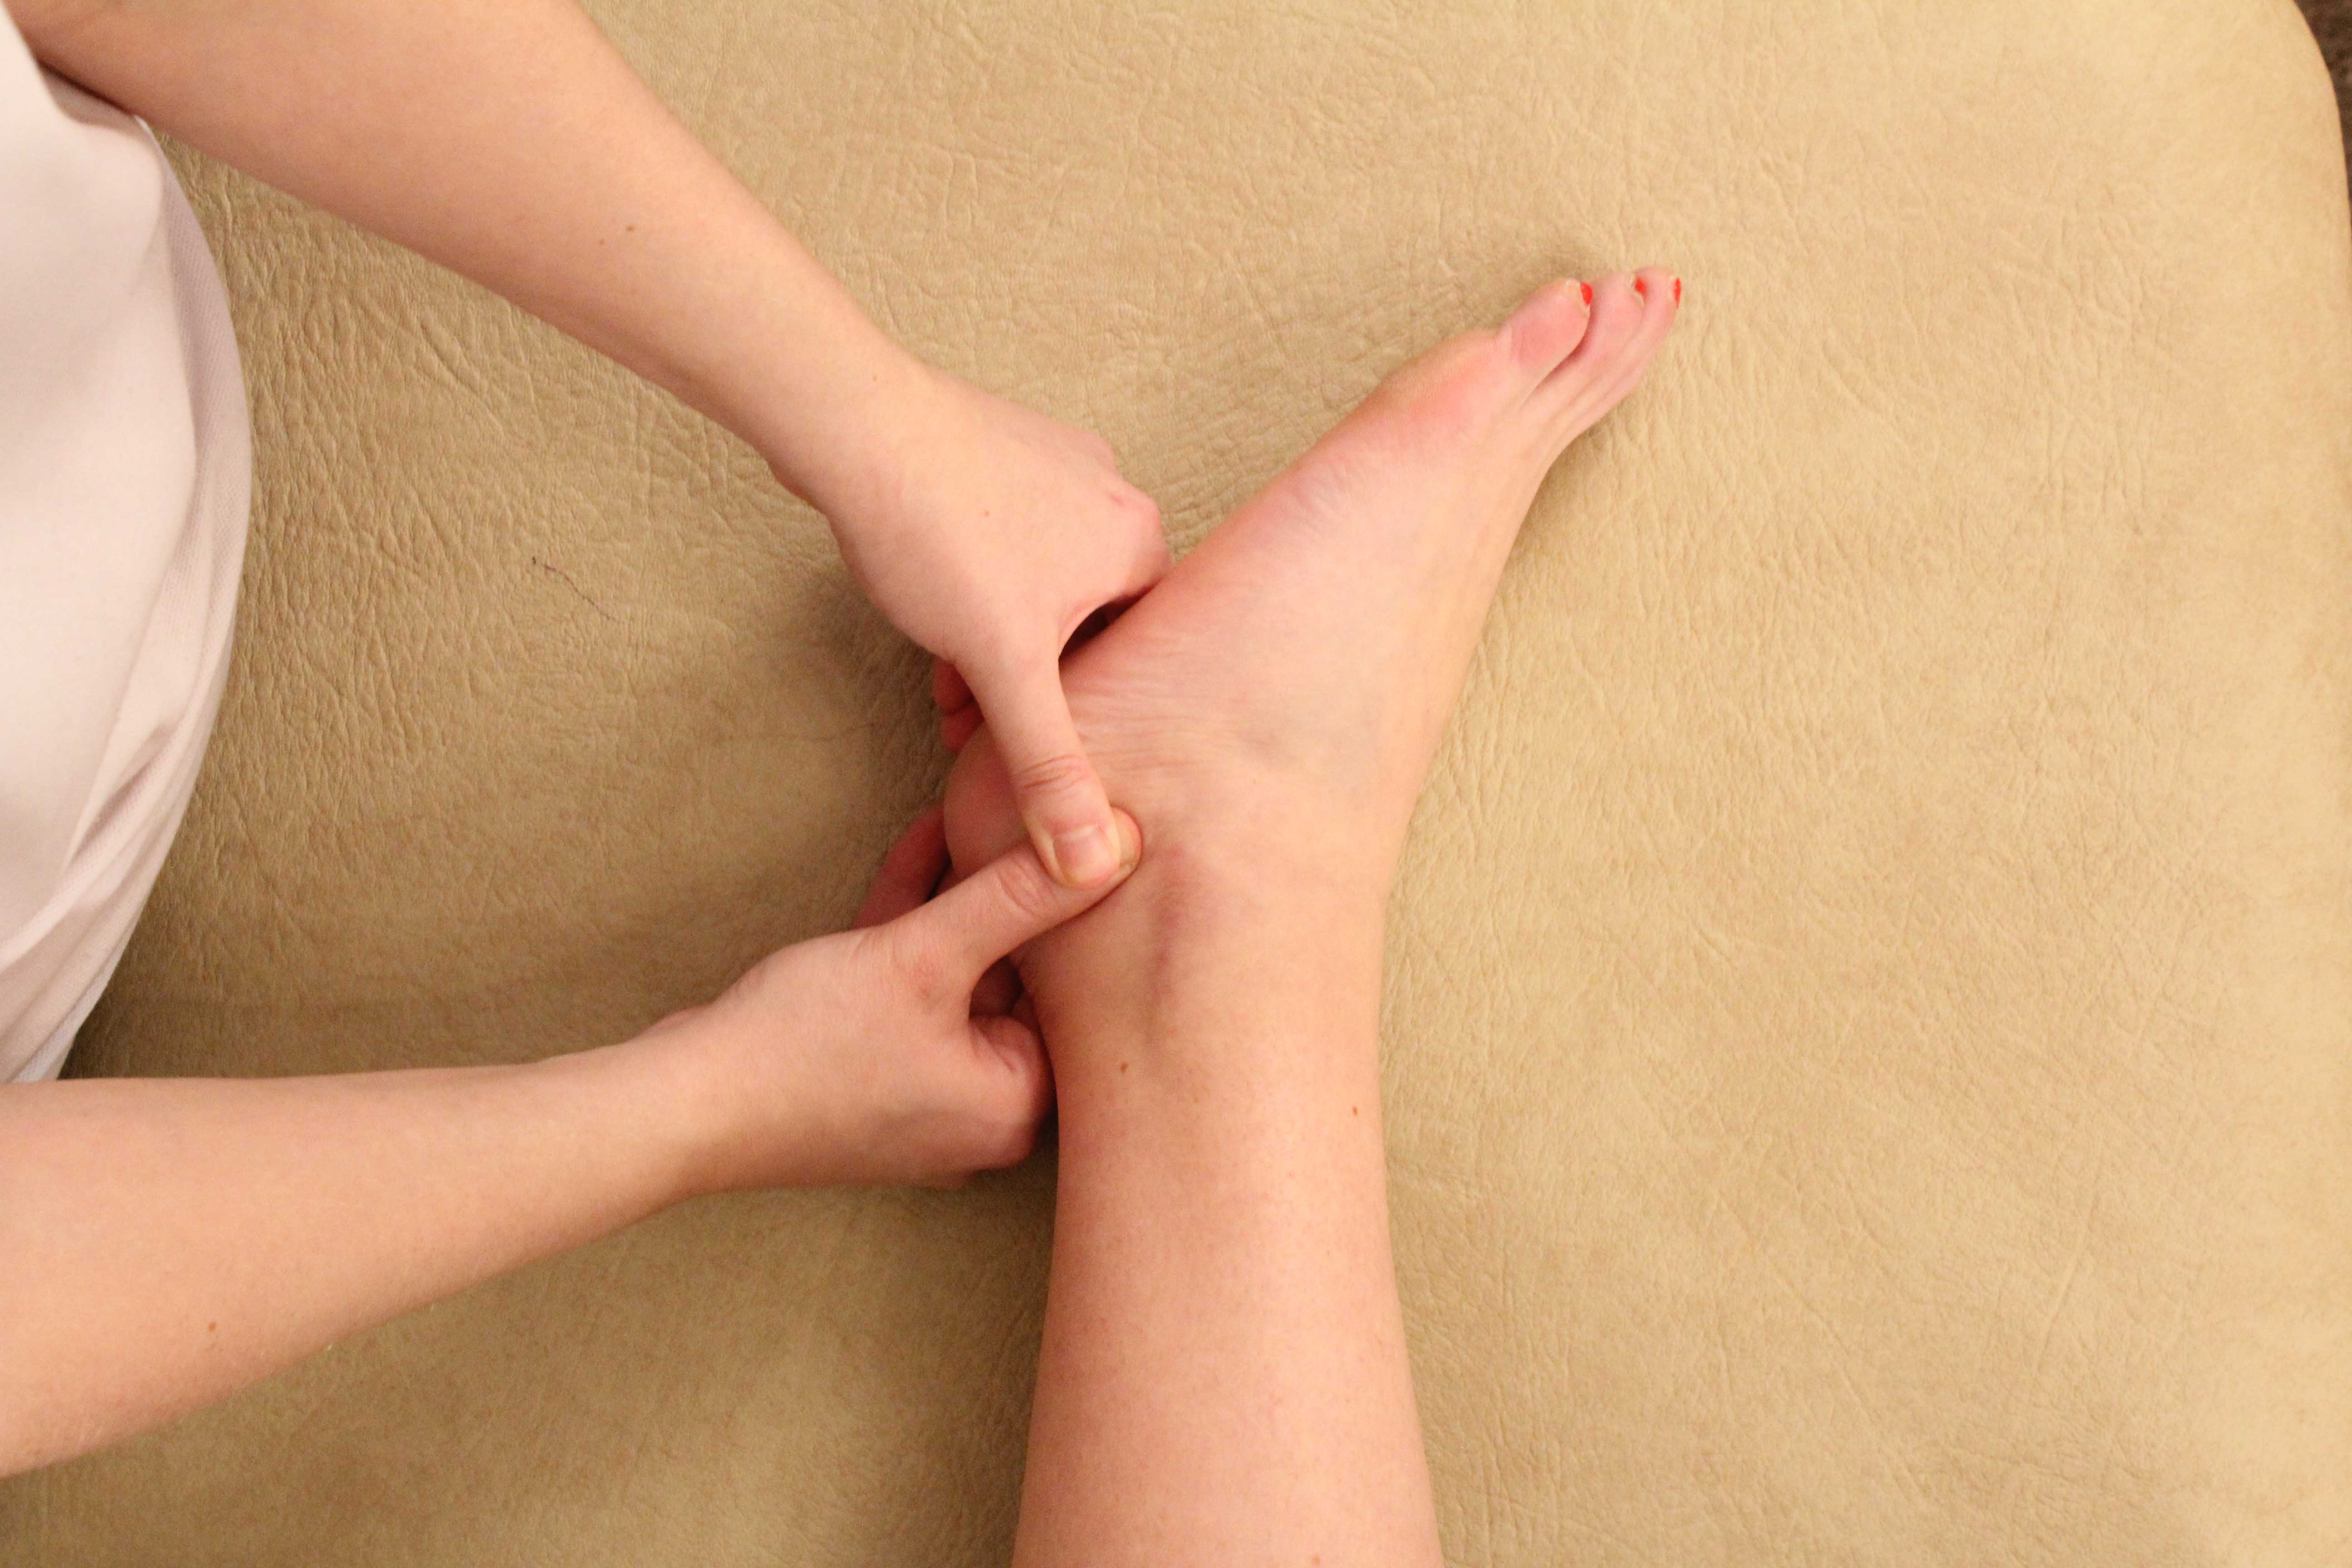 Friction massage of the ligaments in the foot